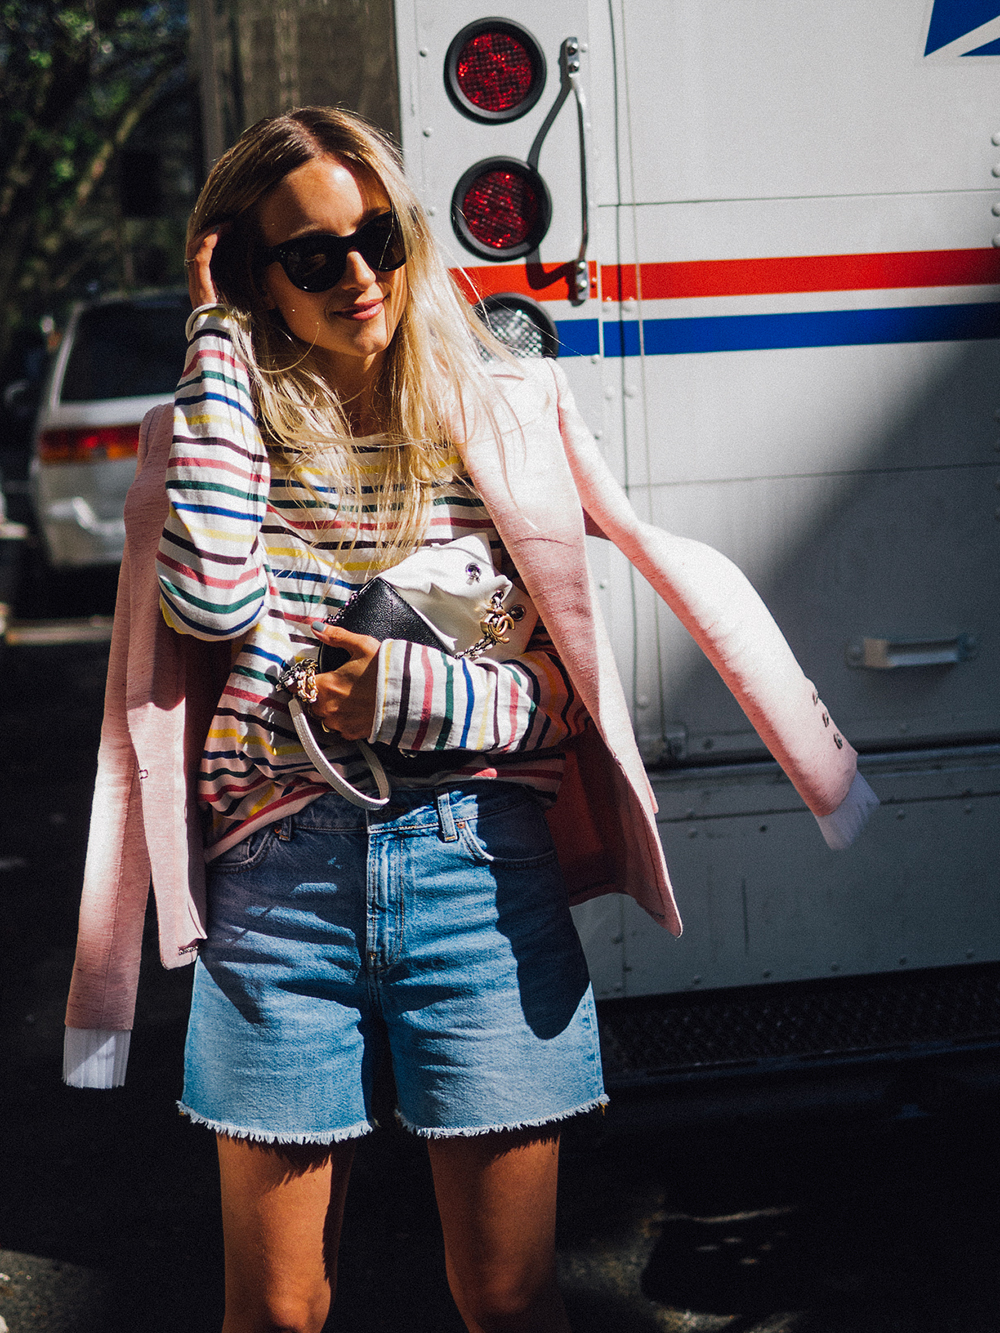 Charlotte Groeneveld Thefashionguitar wearing Chanel Cuba Cruis and the Gabrielle Chanel bag